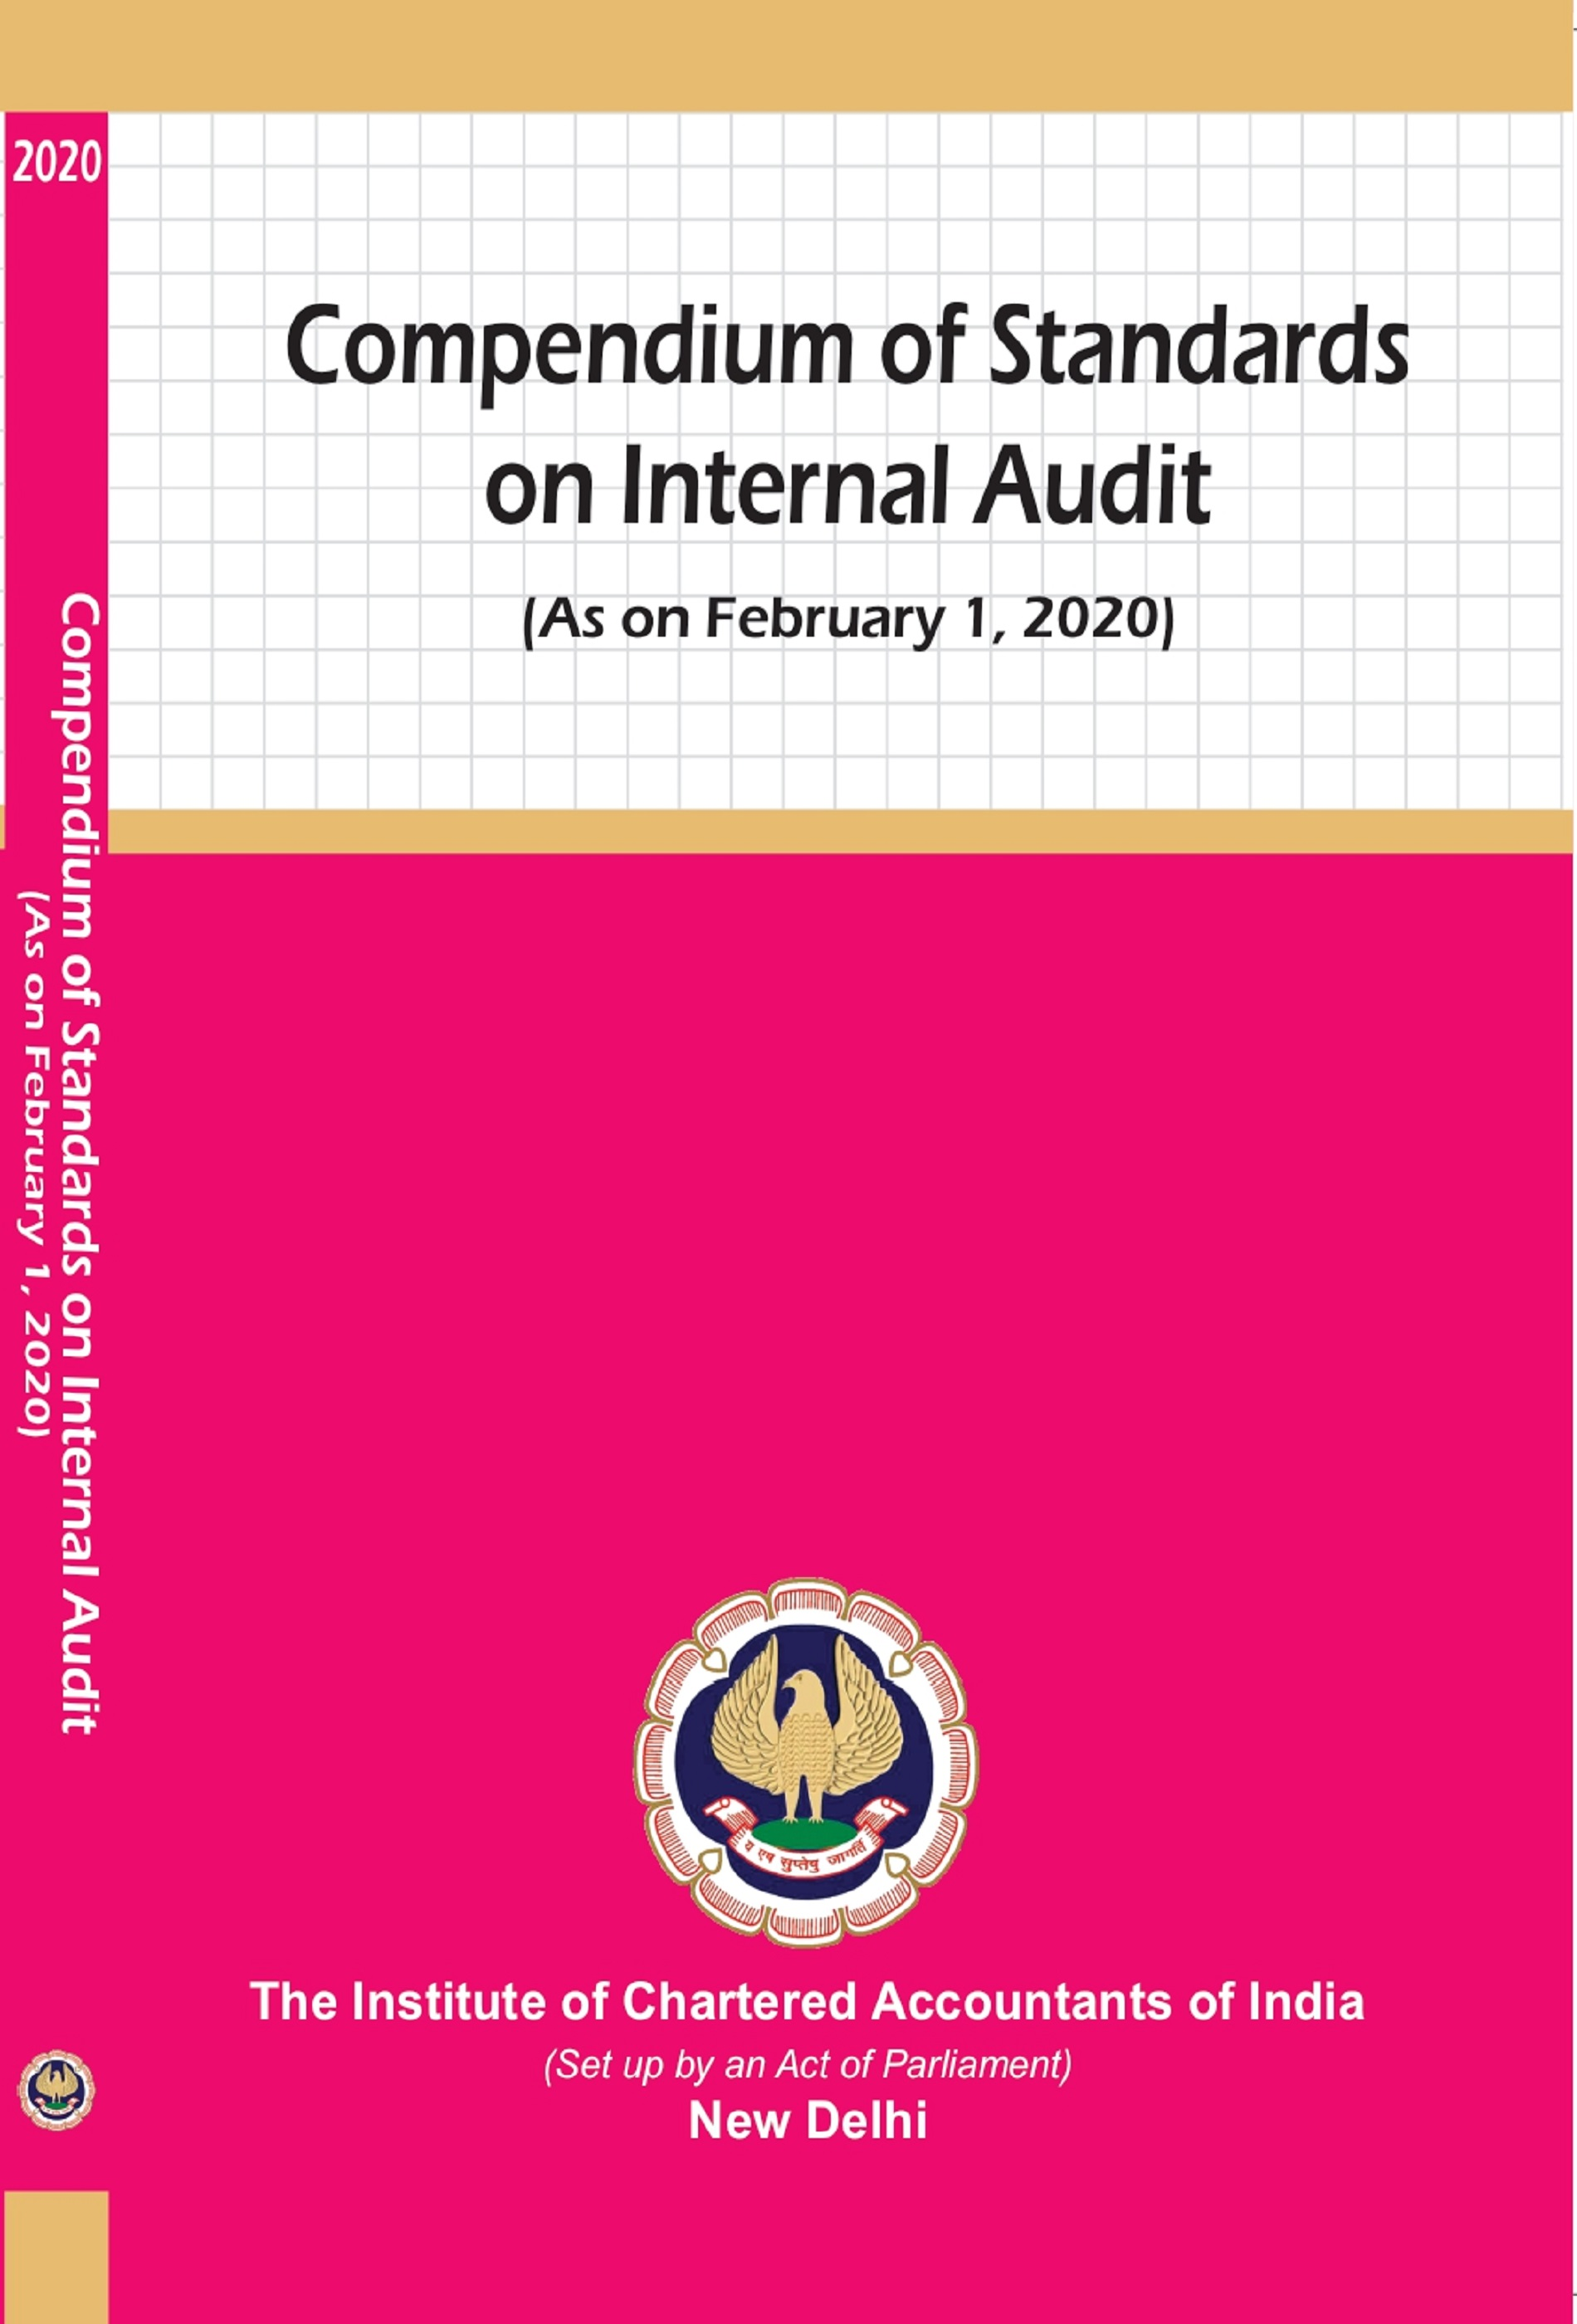 Compendium of Standards on Internal Audit (As on February 1, 2020)